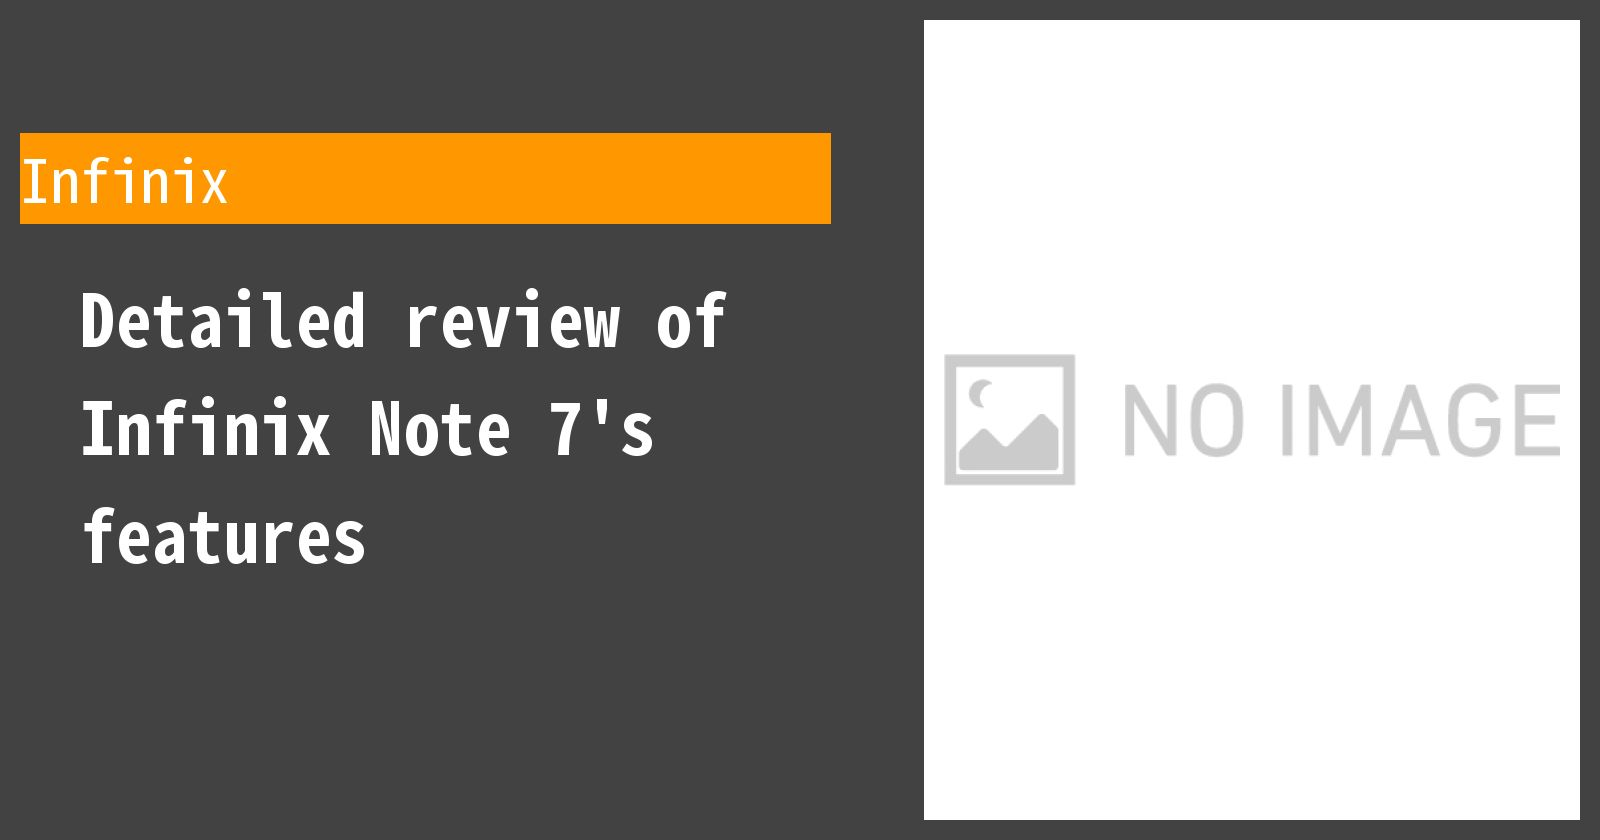 Detailed review of Infinix Note 7's features